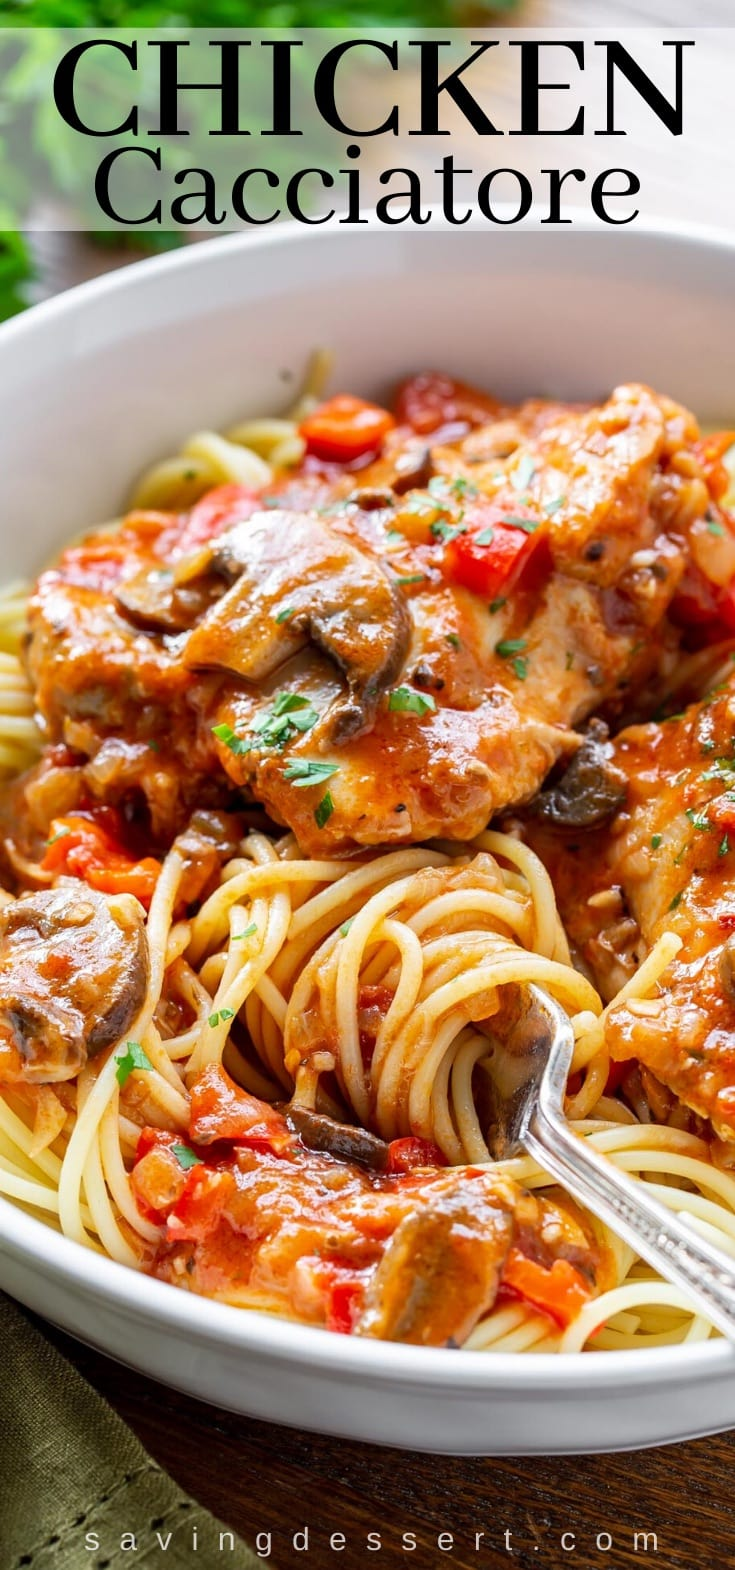 A bowl of spaghetti with chicken cacciatore on top with red peppers and mushrooms